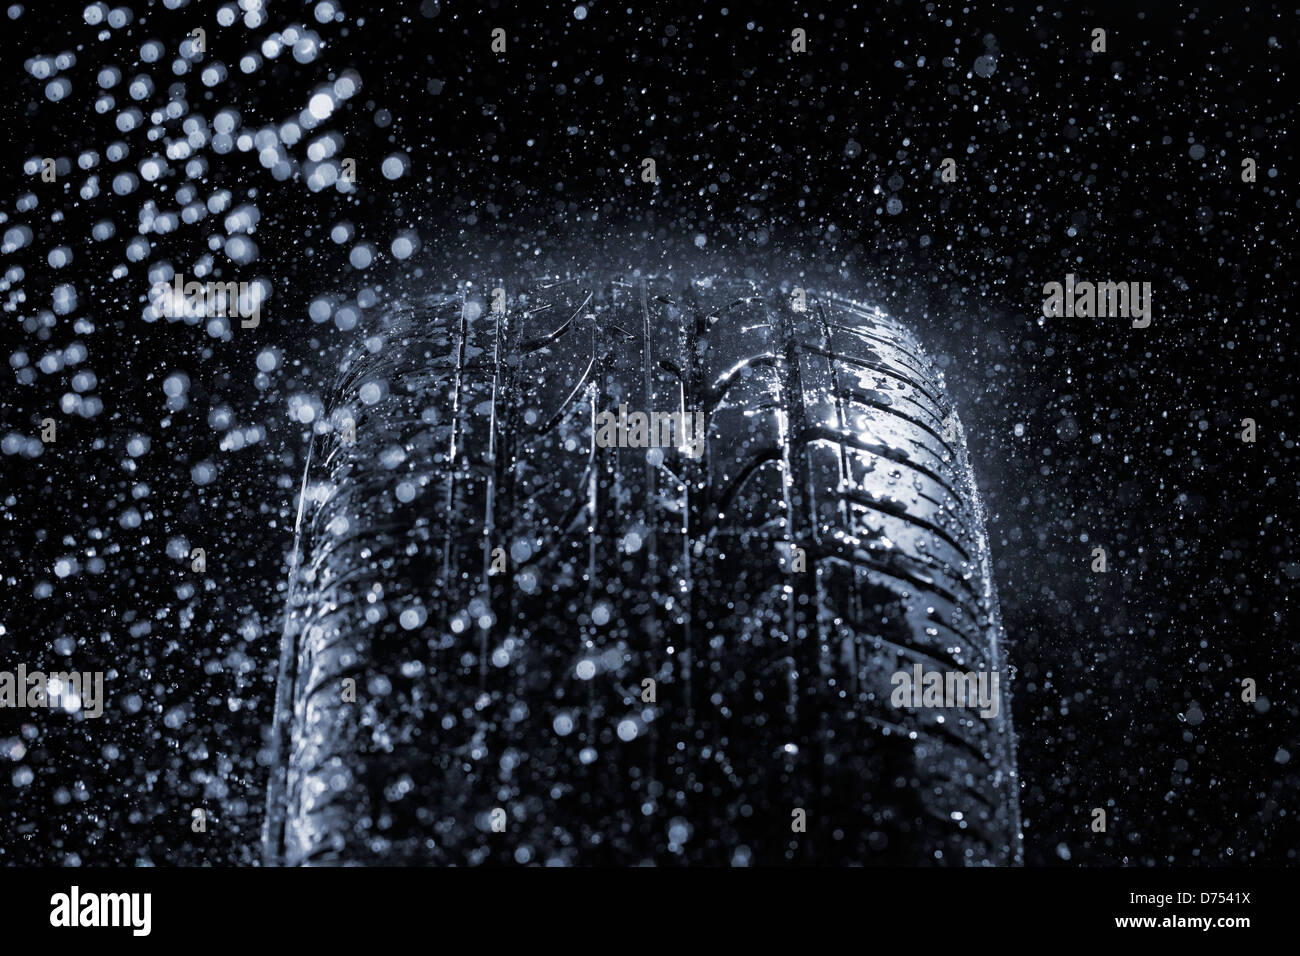 Car tire in rainy conditions. Very short depth-of-field. Stock Photo